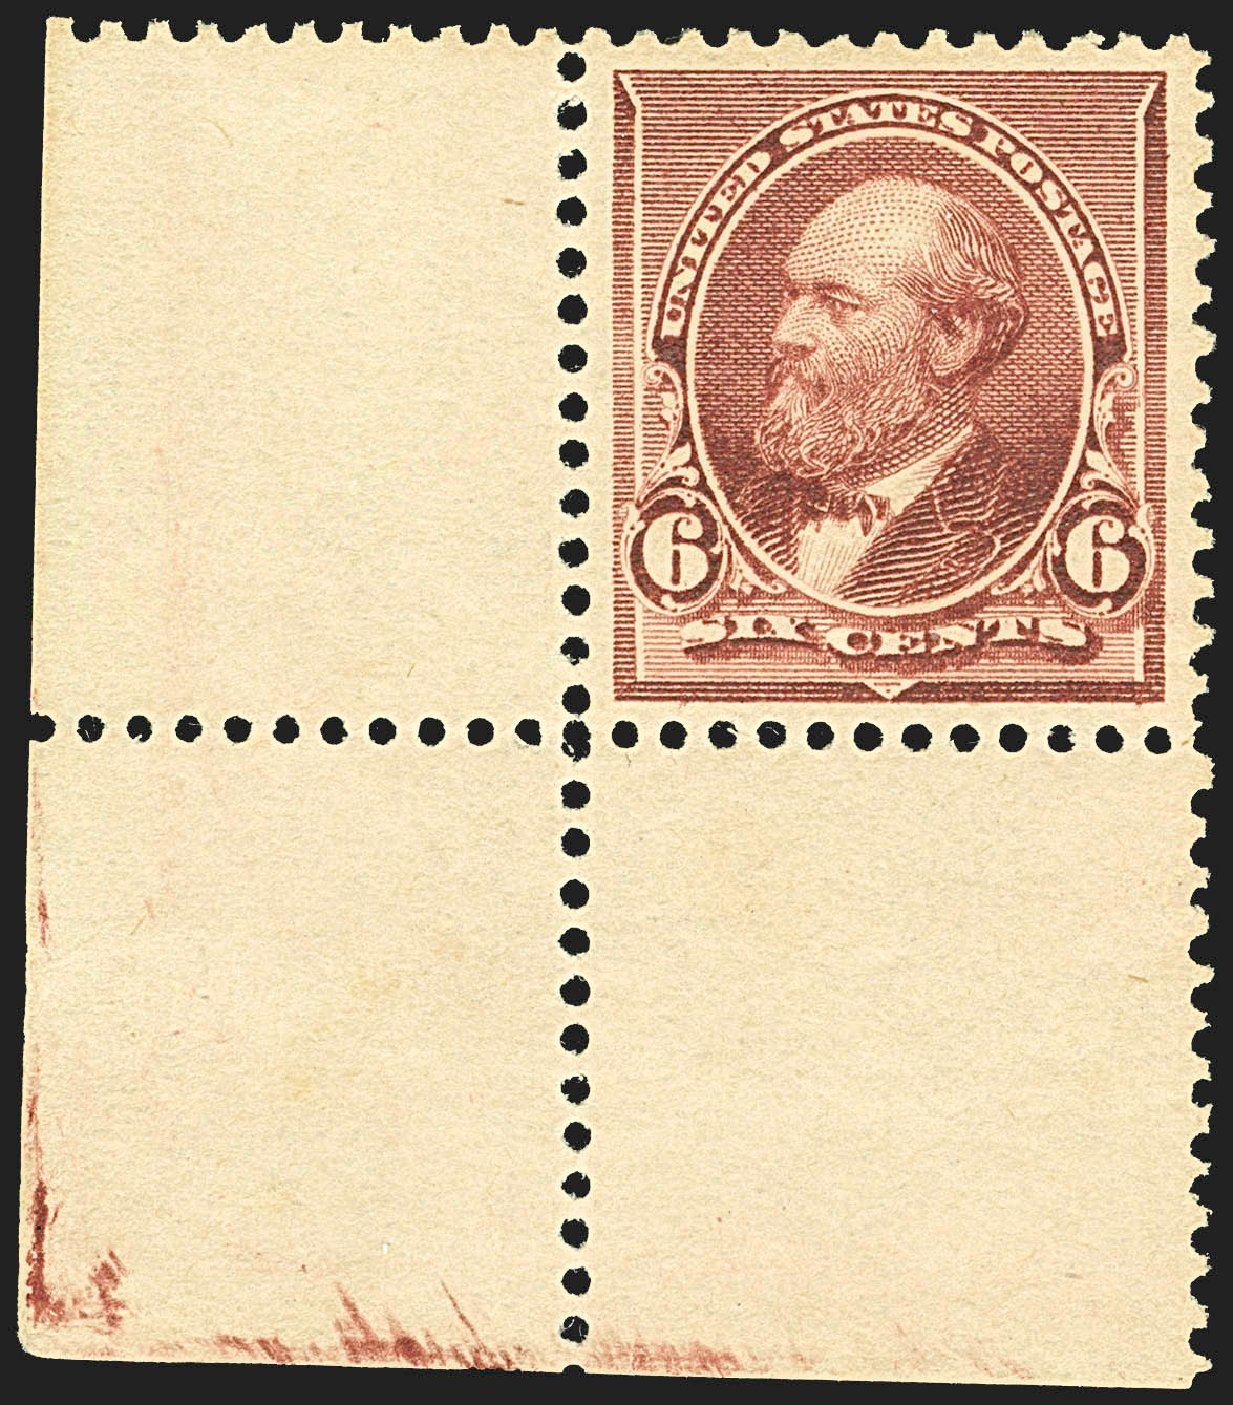 Costs of US Stamps Scott Cat. 224 - 6c 1890 Garfield. Robert Siegel Auction Galleries, Jul 2015, Sale 1107, Lot 297